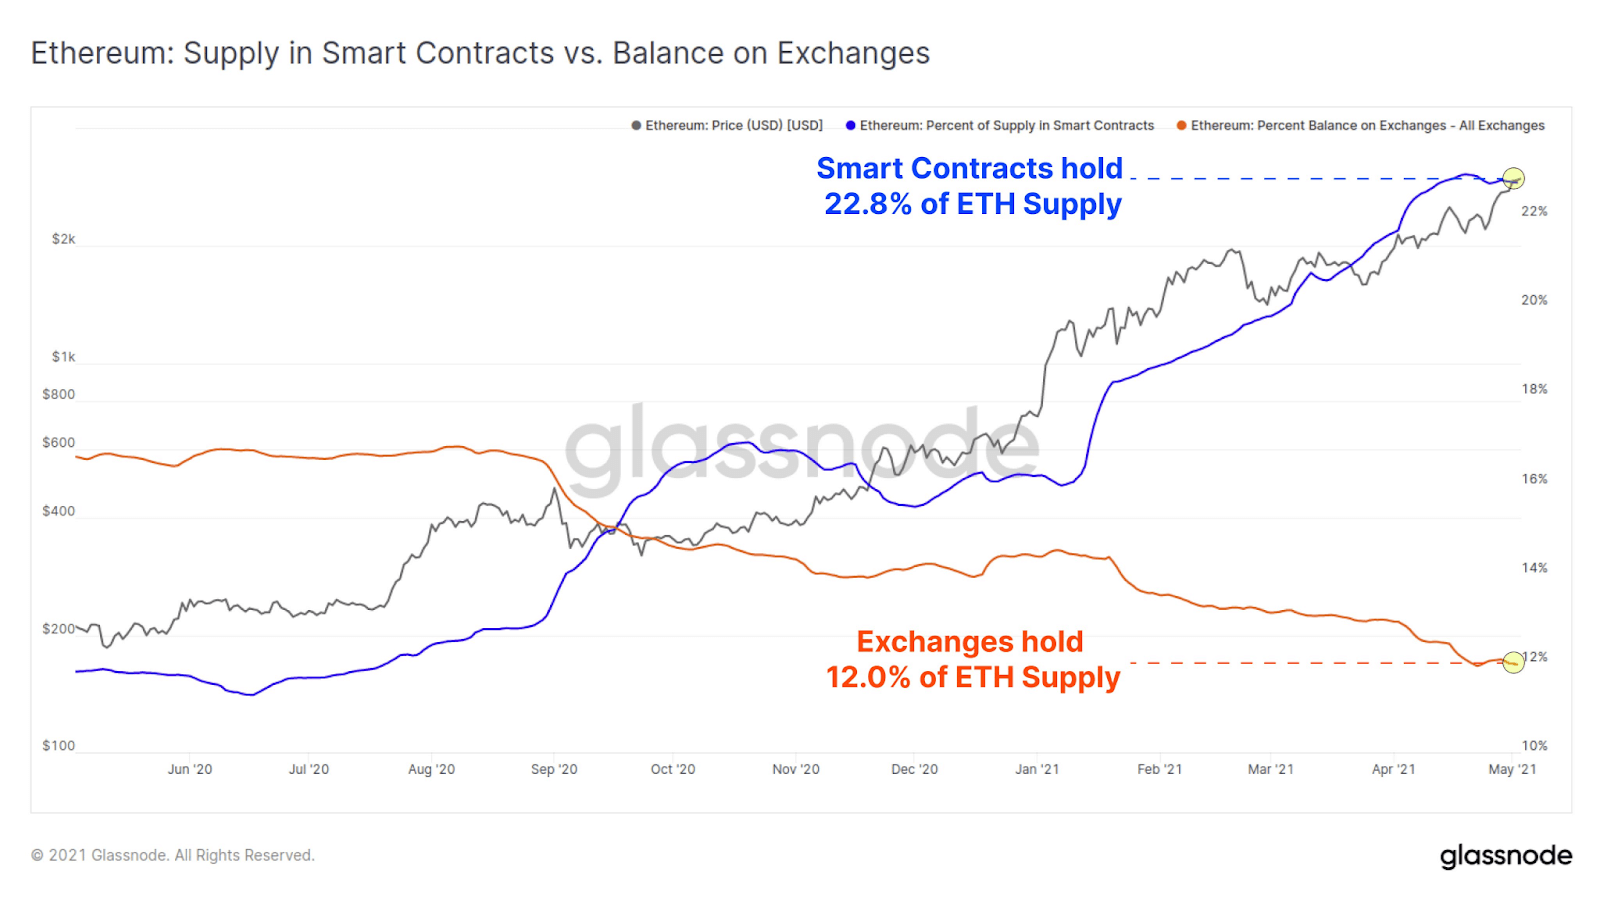 ETH Supply in Smart Contracts vs. Balance on Exchange